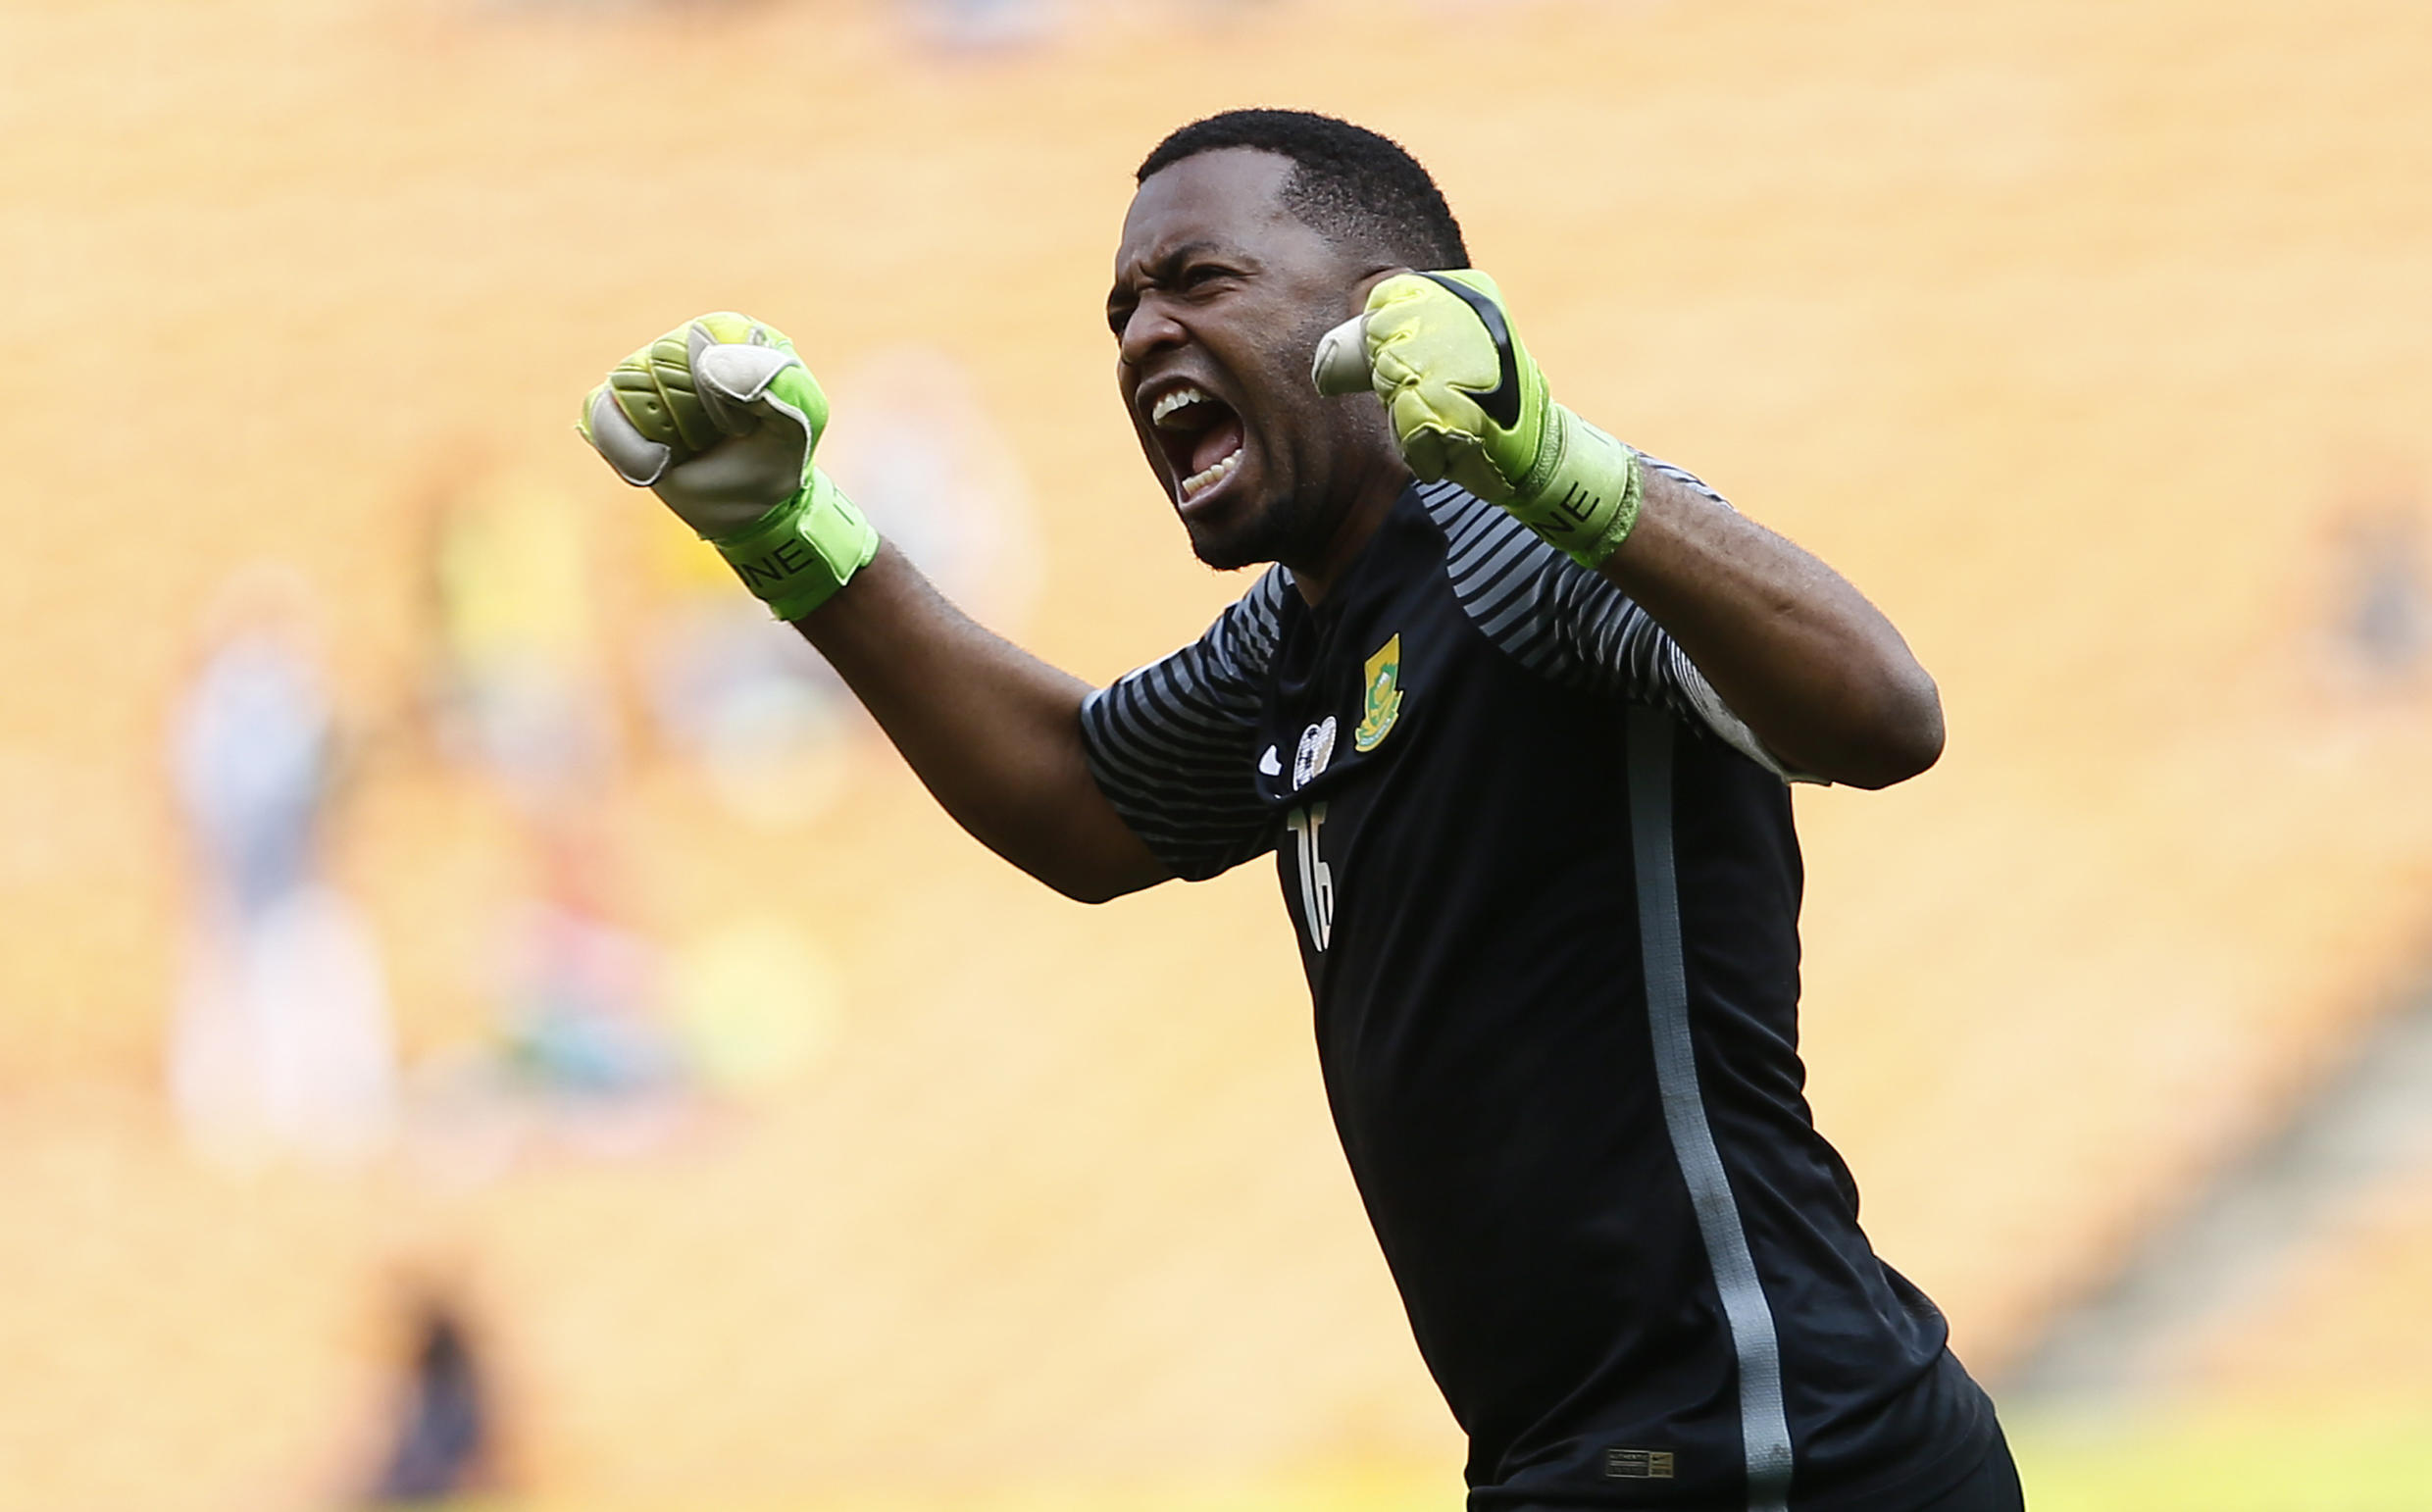 Kaizer Chiefs goalkeeper Itumeleng Khune saved a late penalty in a CAF Champions League victory over PWD Bamenda.